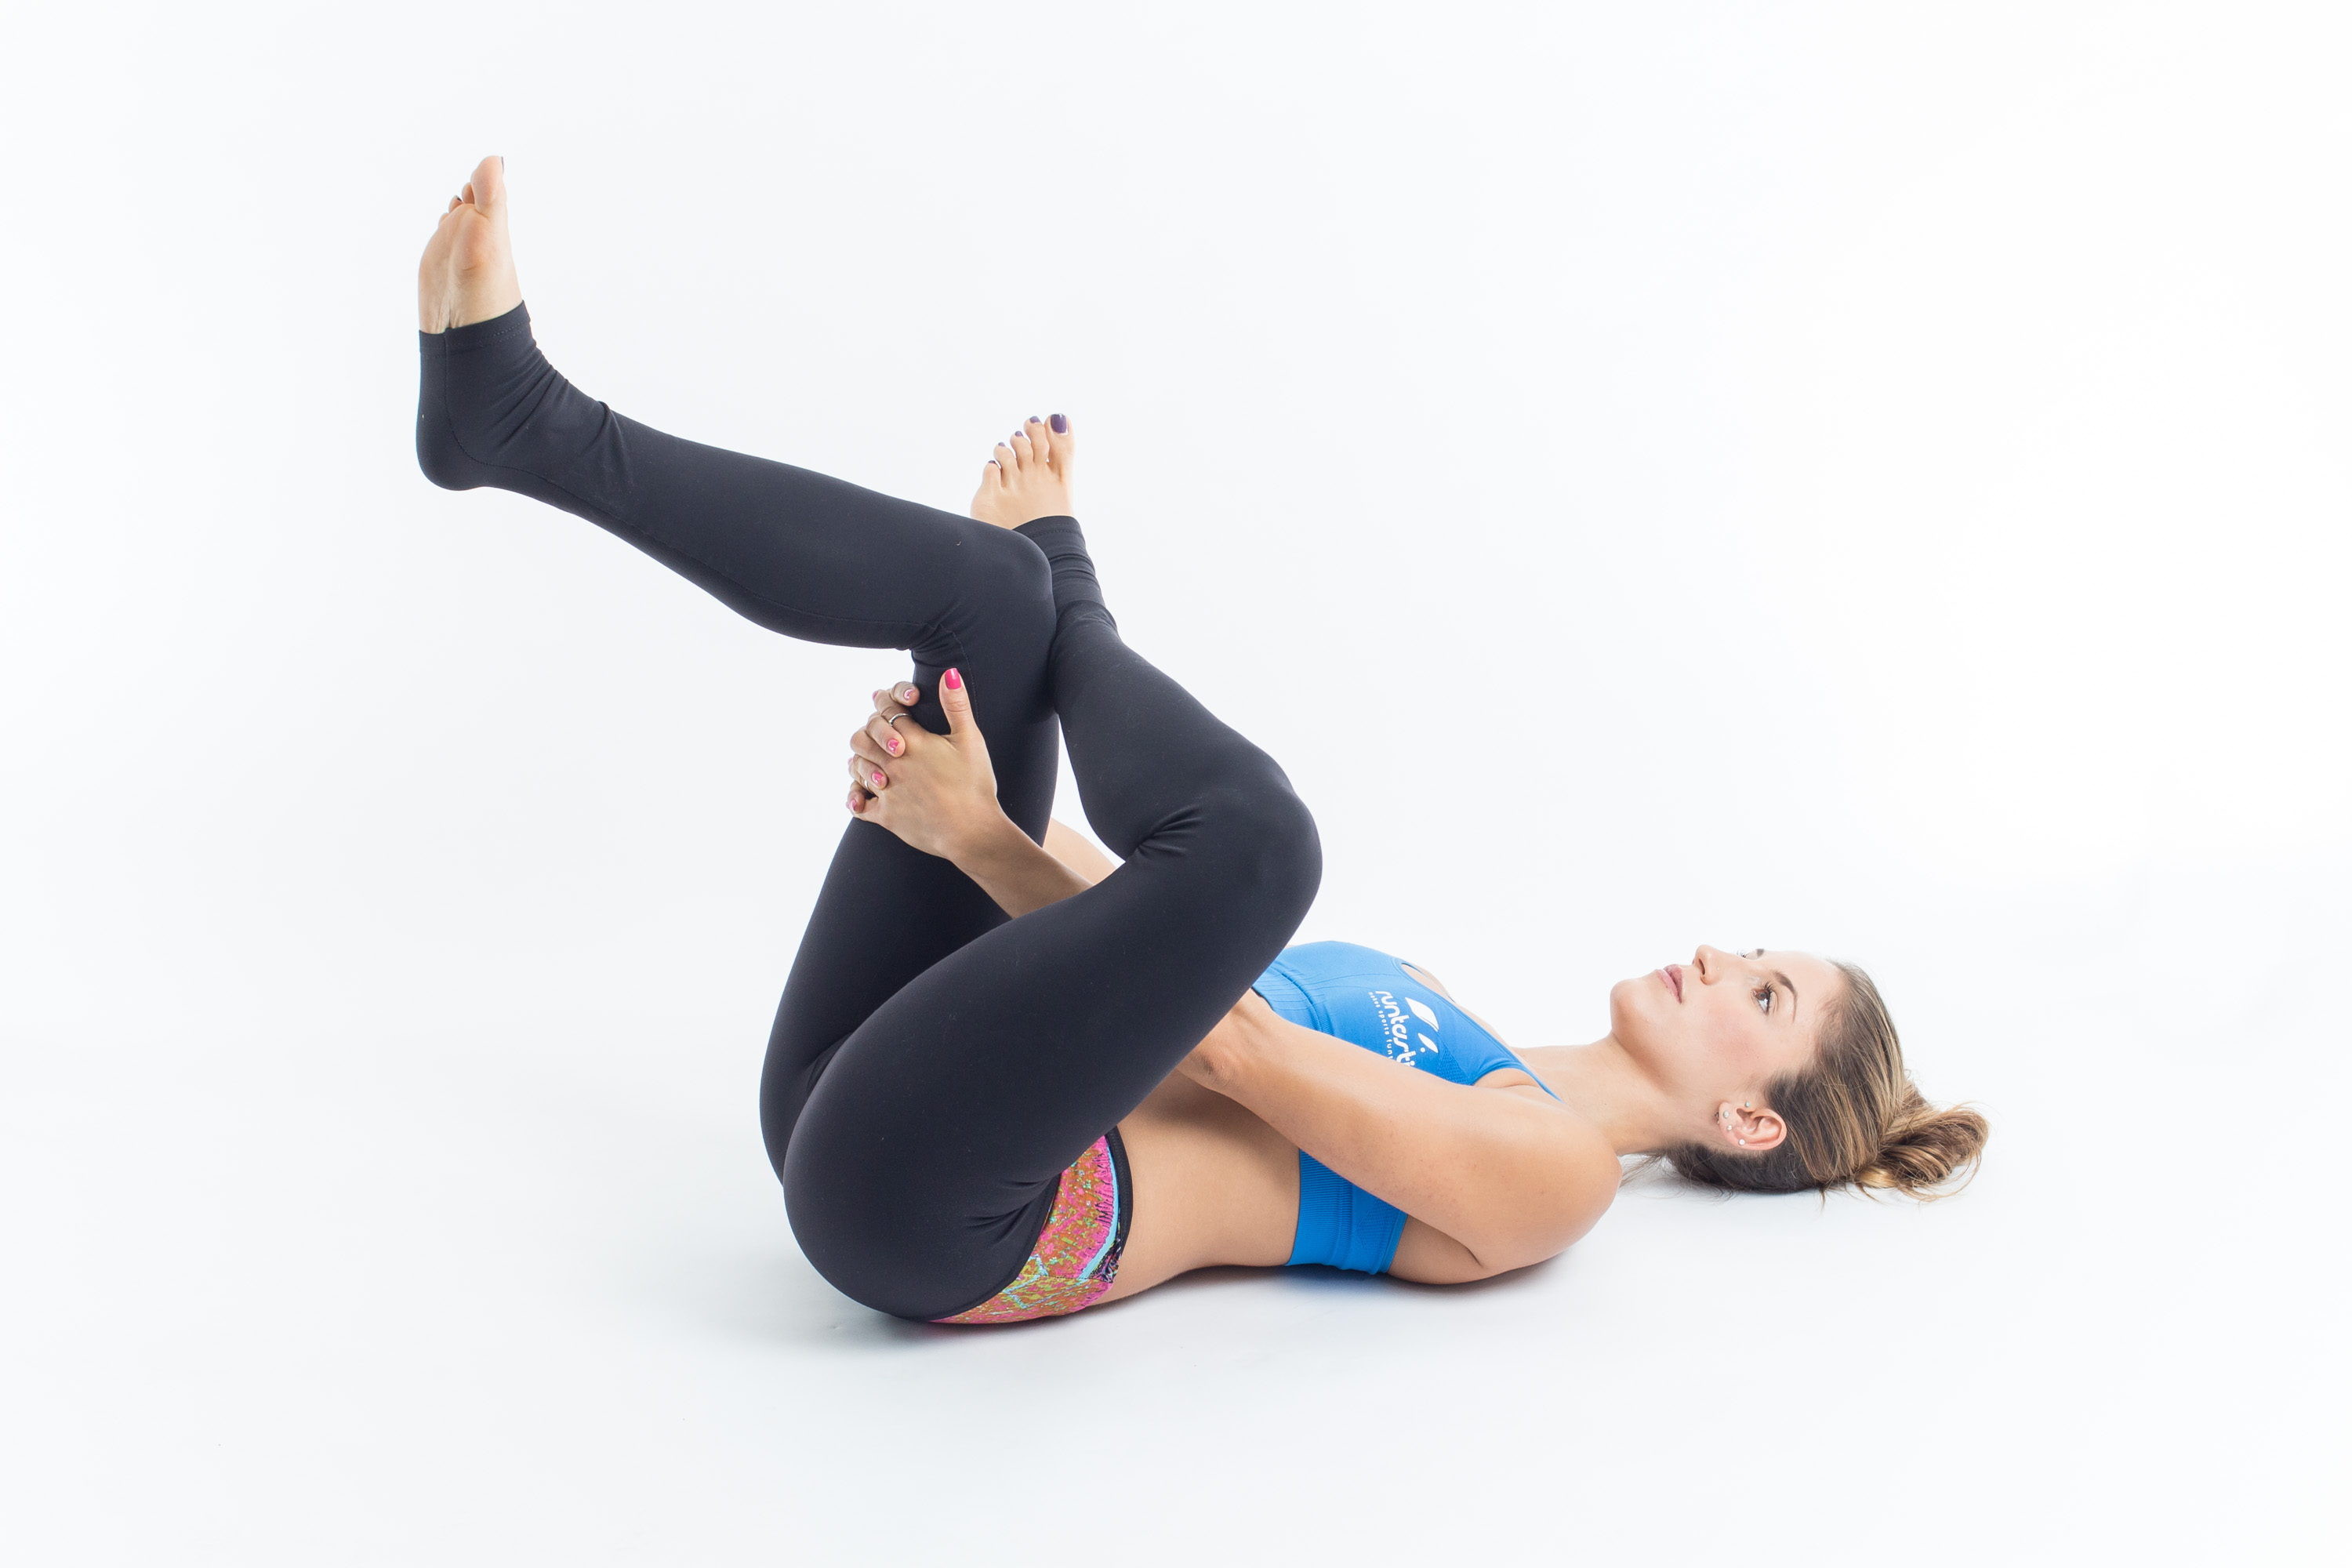 Yoga Poses for Runners - Reclining Pigeon